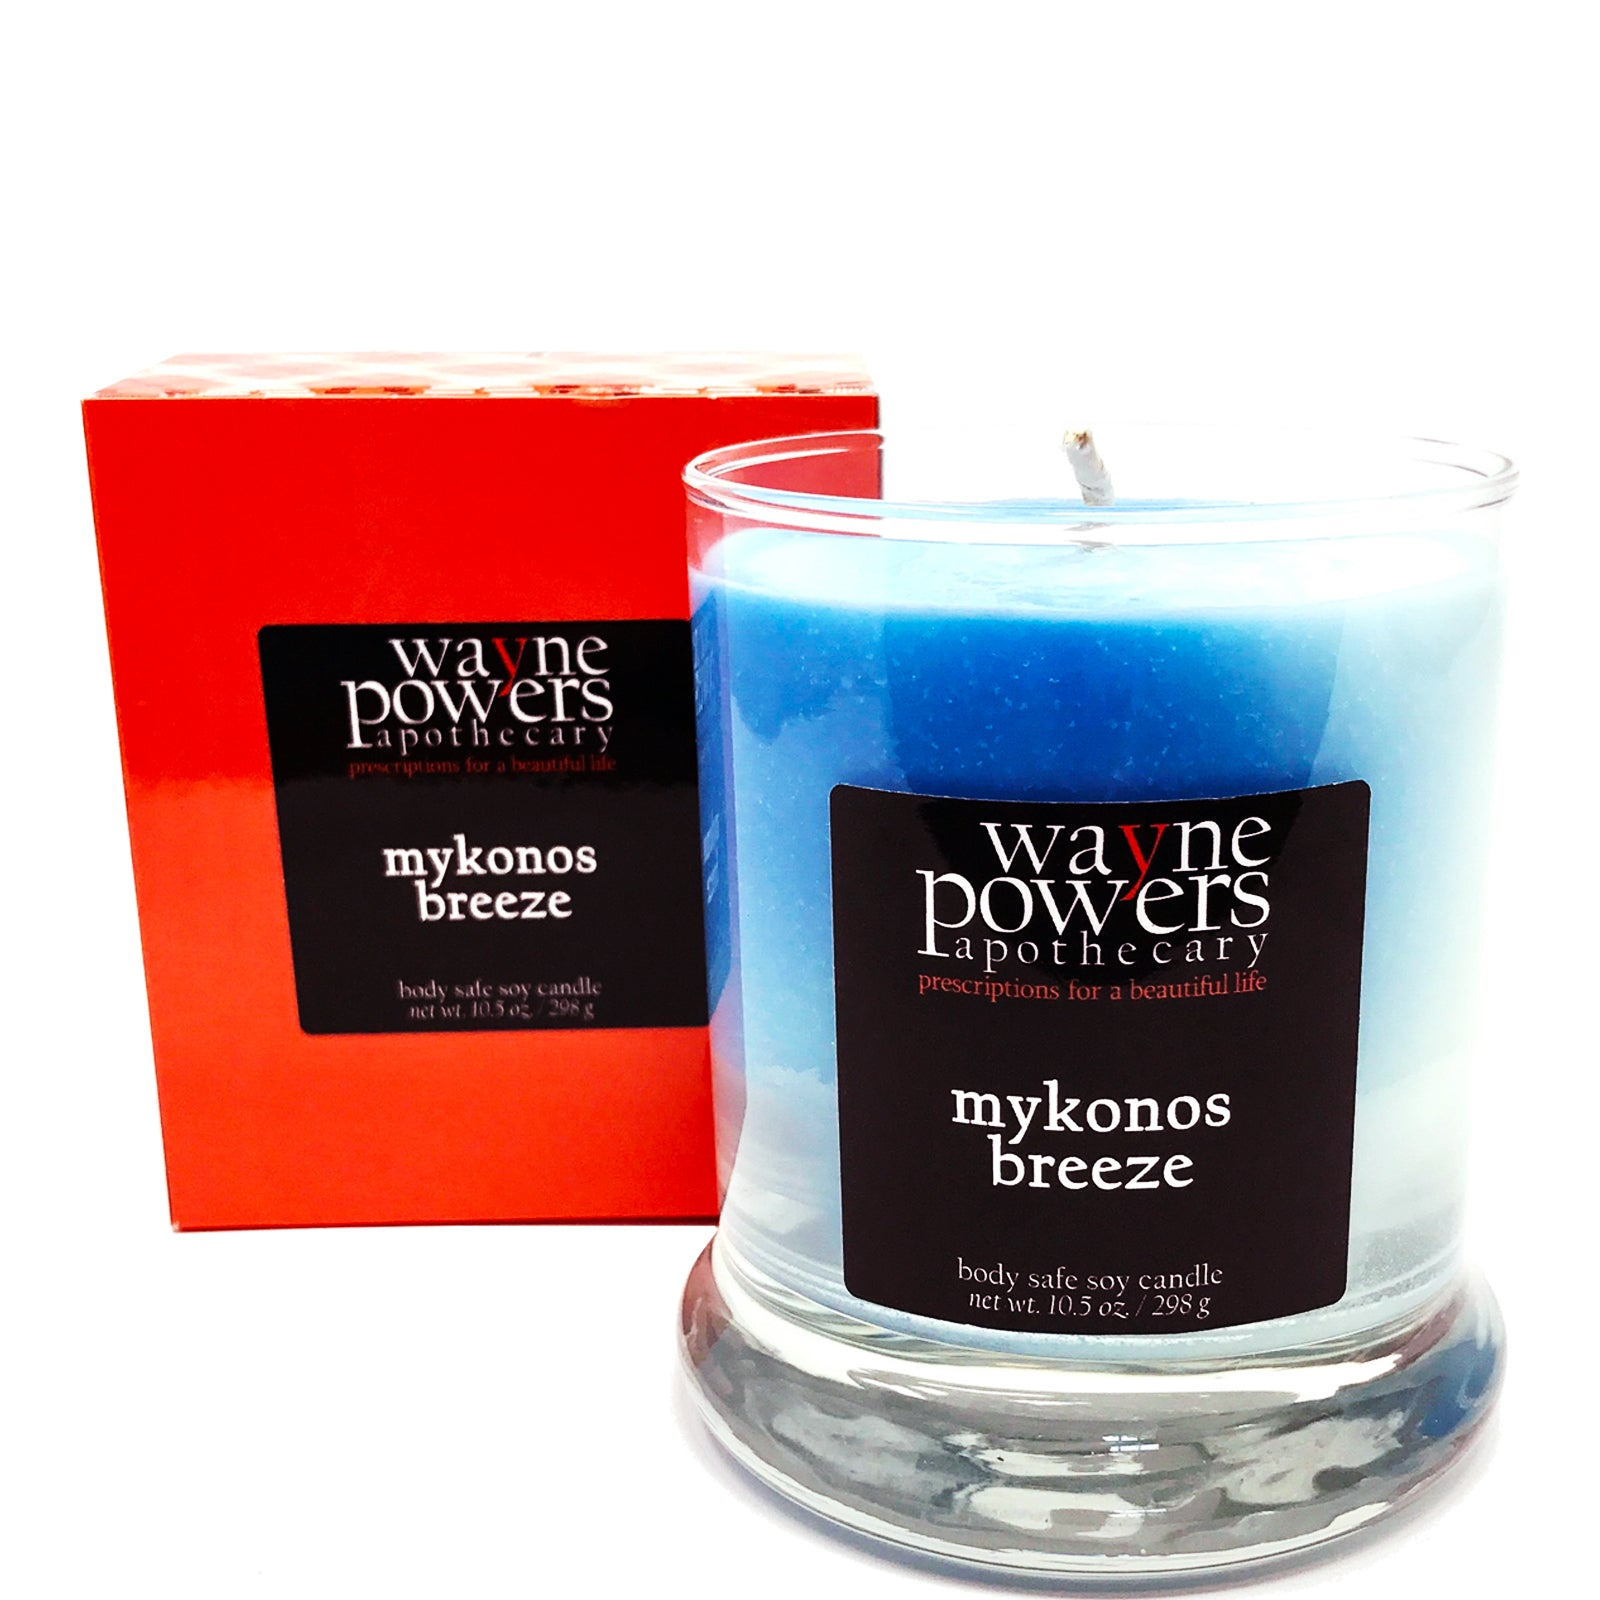 Mykonos Breeze Body Safe Soy Candle by Wayne Powers Apothecary